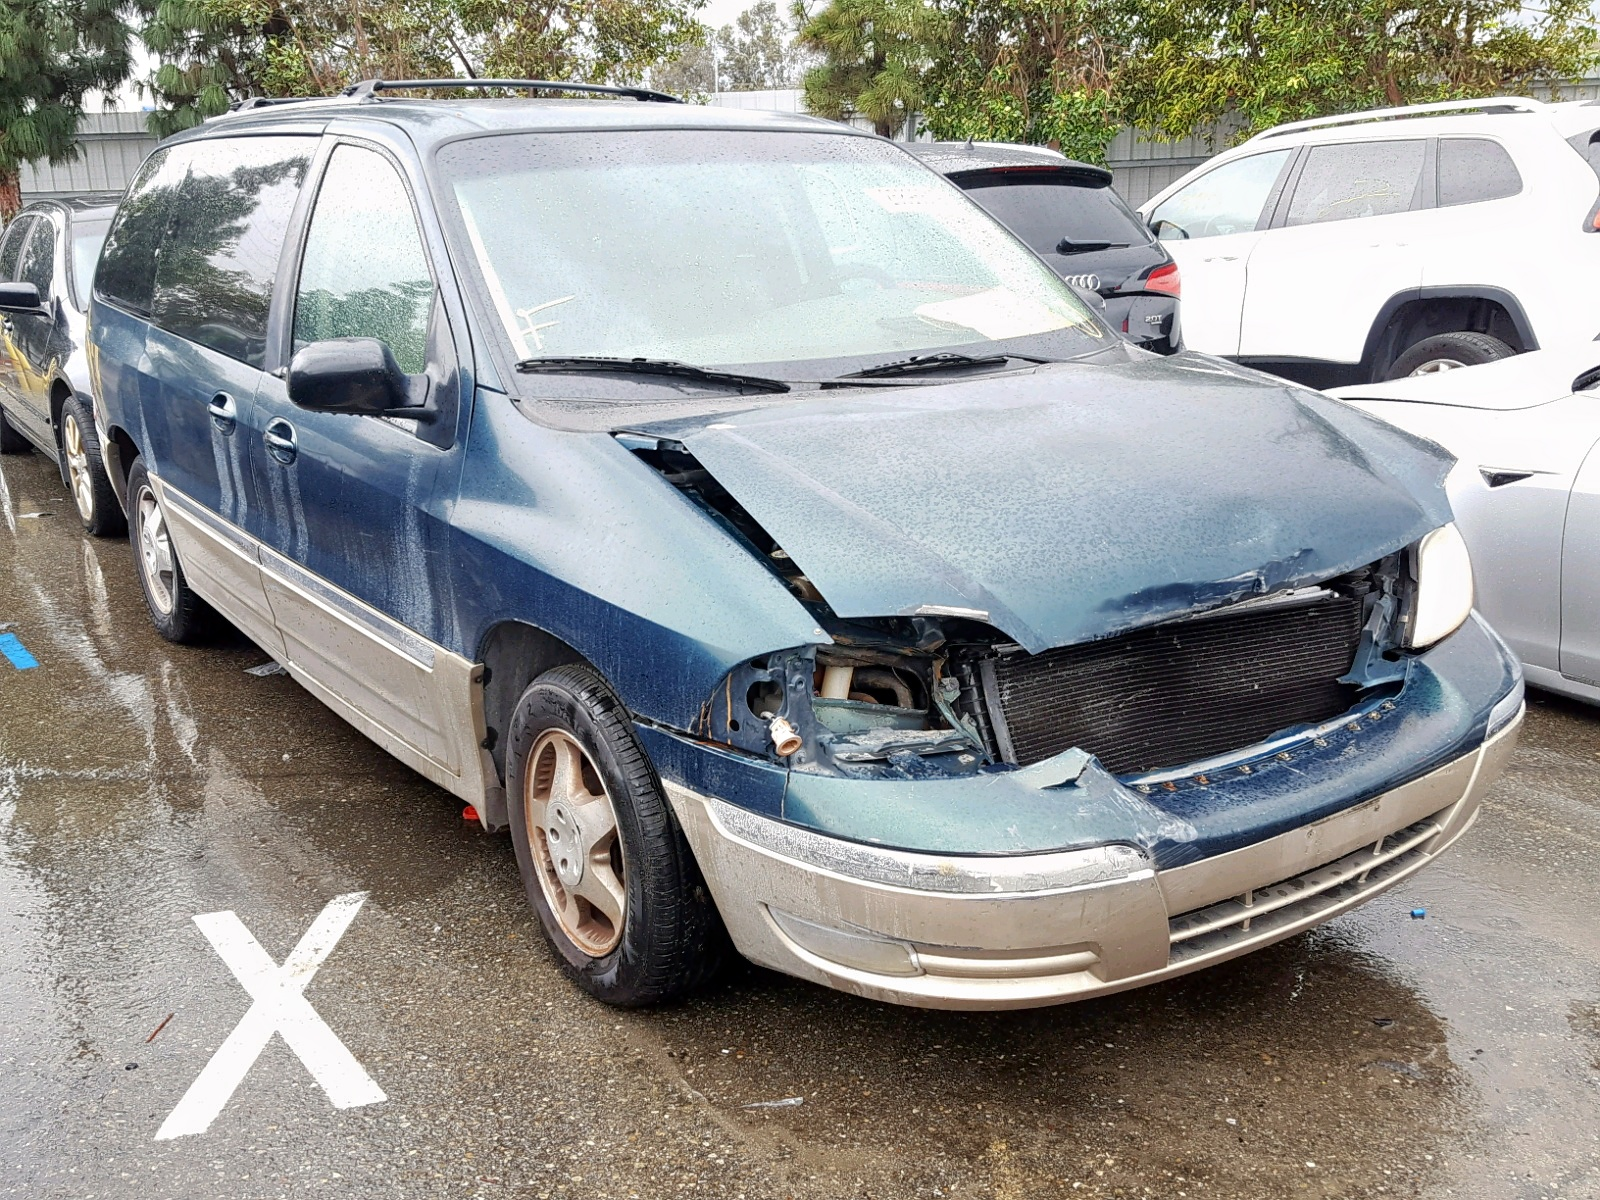 hight resolution of 2fmda5349yba17220 2000 ford windstar s 3 8l left view 2fmda5349yba17220